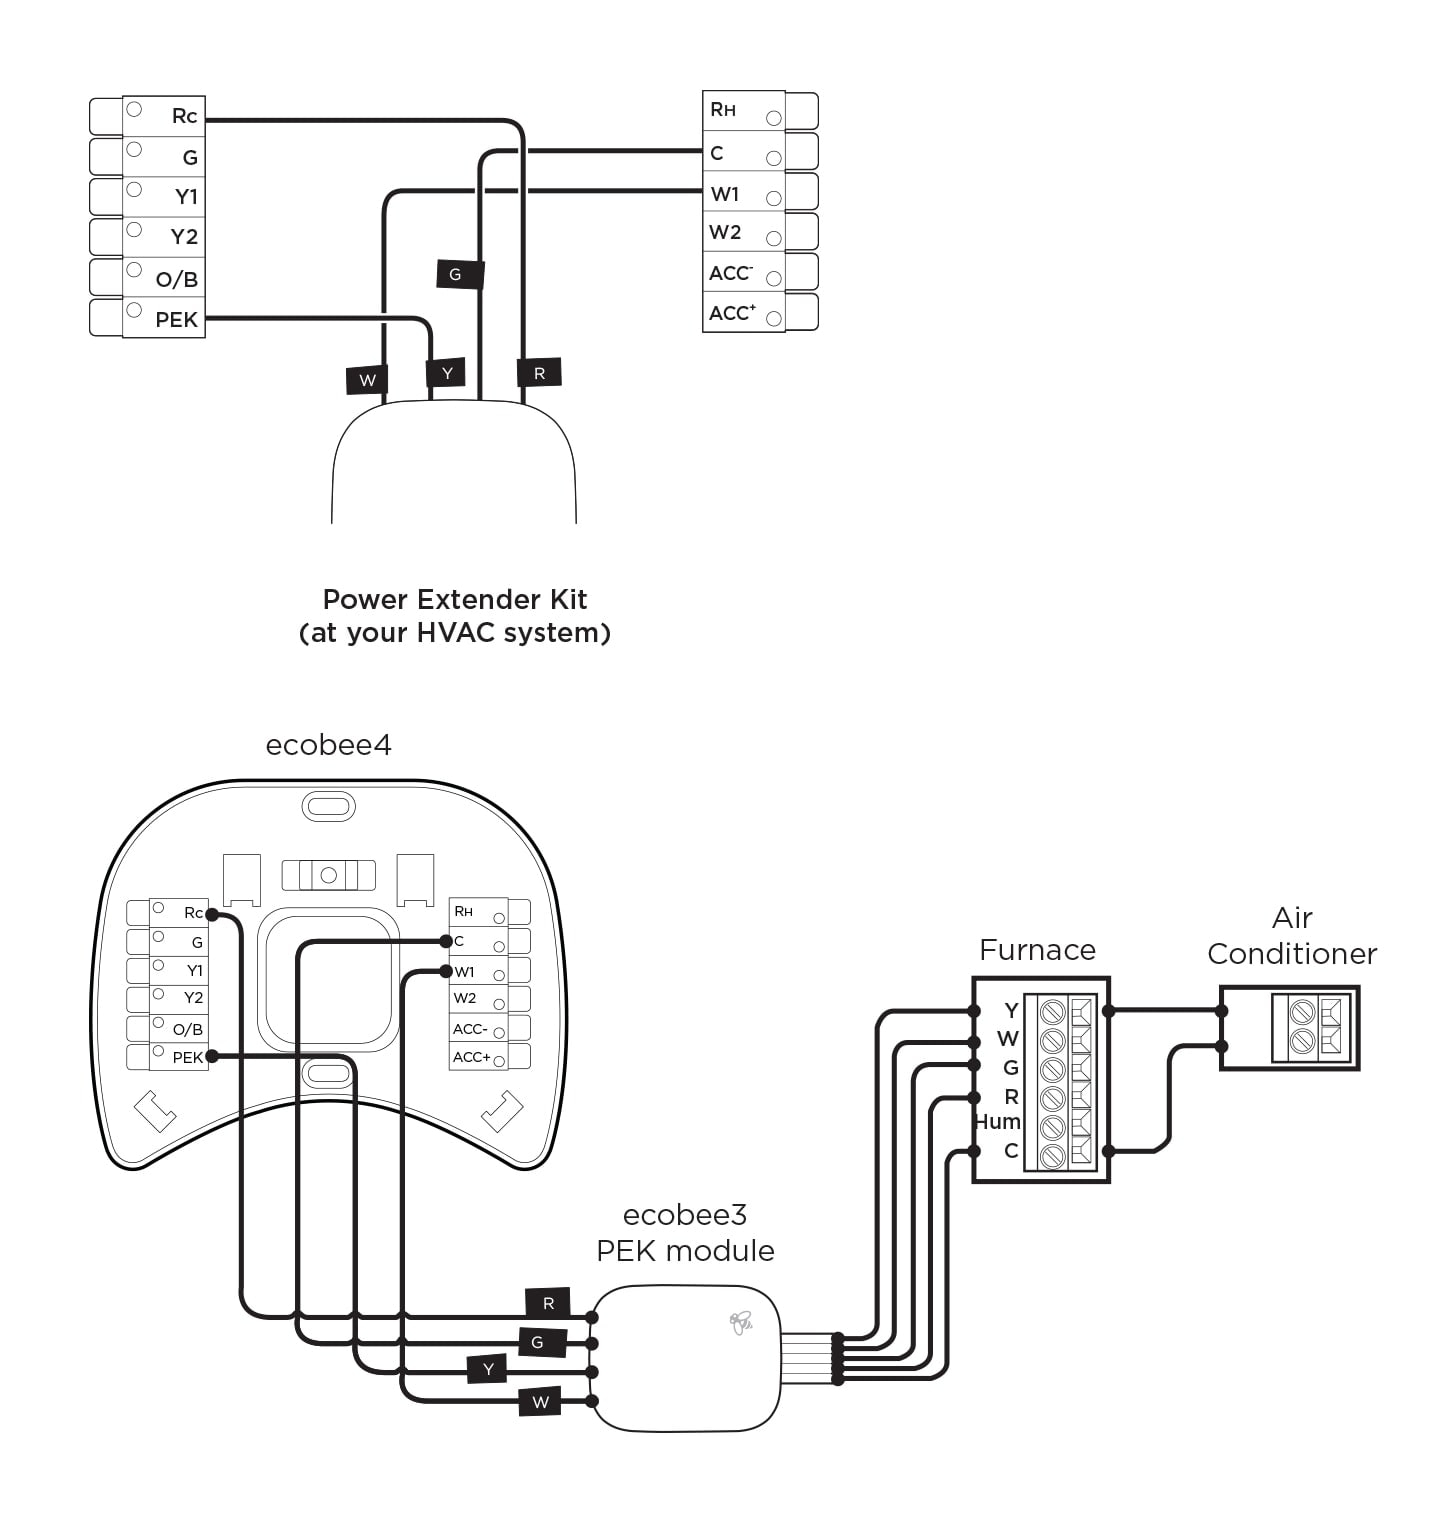 Ecobee4 Wiring Diagram | Free Wiring Diagram on honeywell thermostat diagram, thermostat housing, controls for gas valve diagram, circuit diagram, baseboard heat diagram, thermostat white-rodgers wiringheatpump, thermostat clip art, thermostat symbol, wall heater thermostat diagram, thermostat cover, thermostat installation, thermostat schematic diagram, thermostat wire, thermostat troubleshooting, air conditioning diagram, thermostat switch, thermostat cable, refrigerator schematic diagram, thermostat manual,